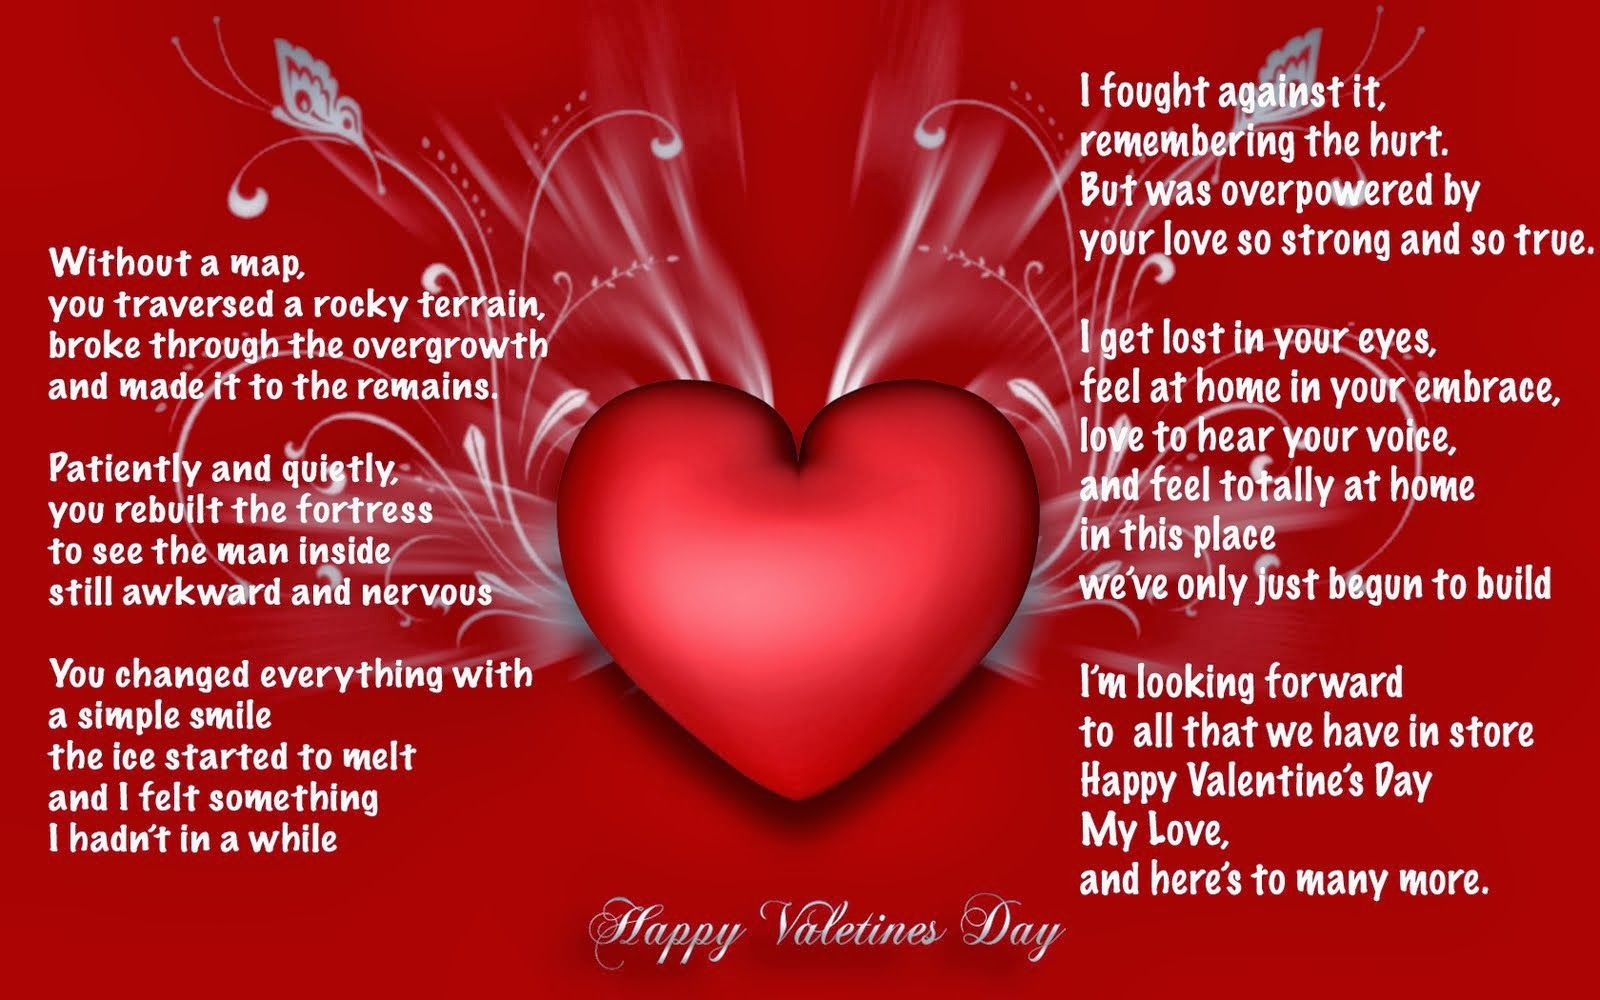 valentines day sayings quotes cheesy cute funny 2014 – Romantic Valentine Card Sayings